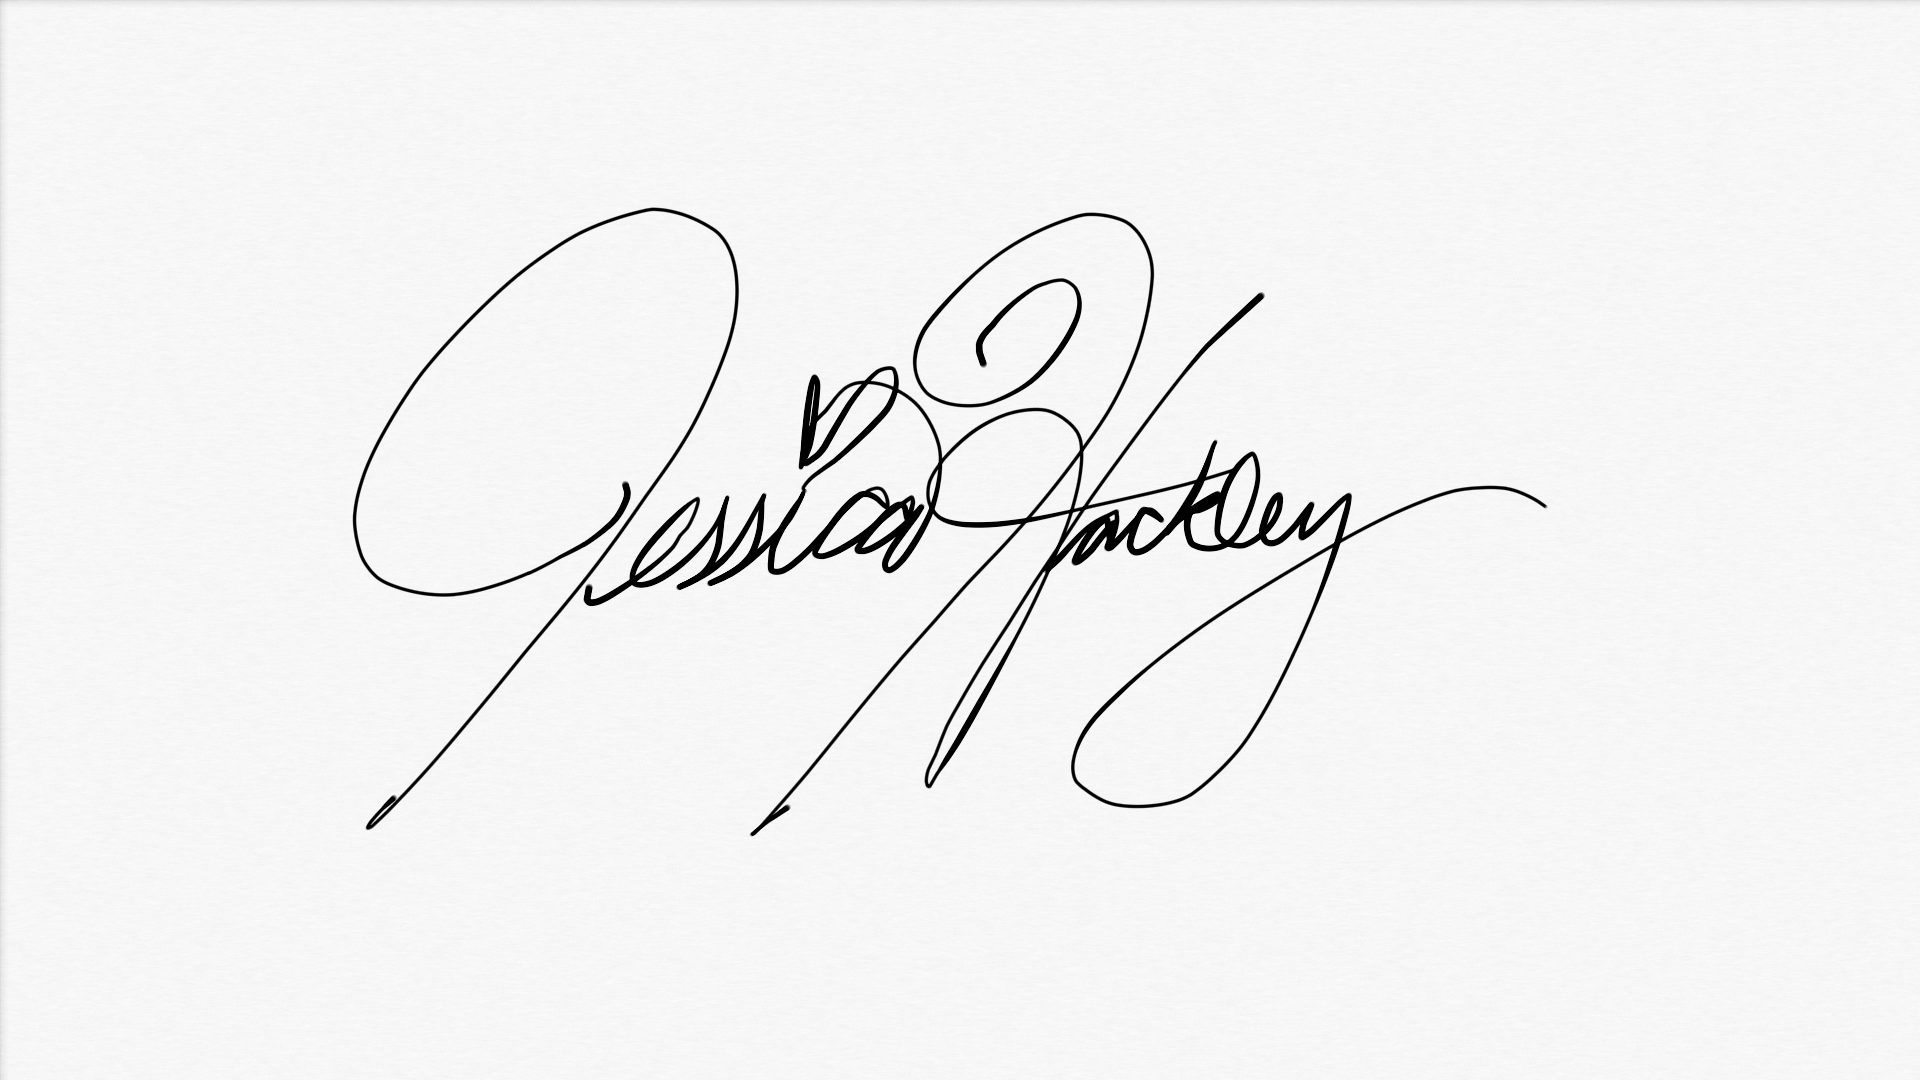 Jessica Hackley's Signature